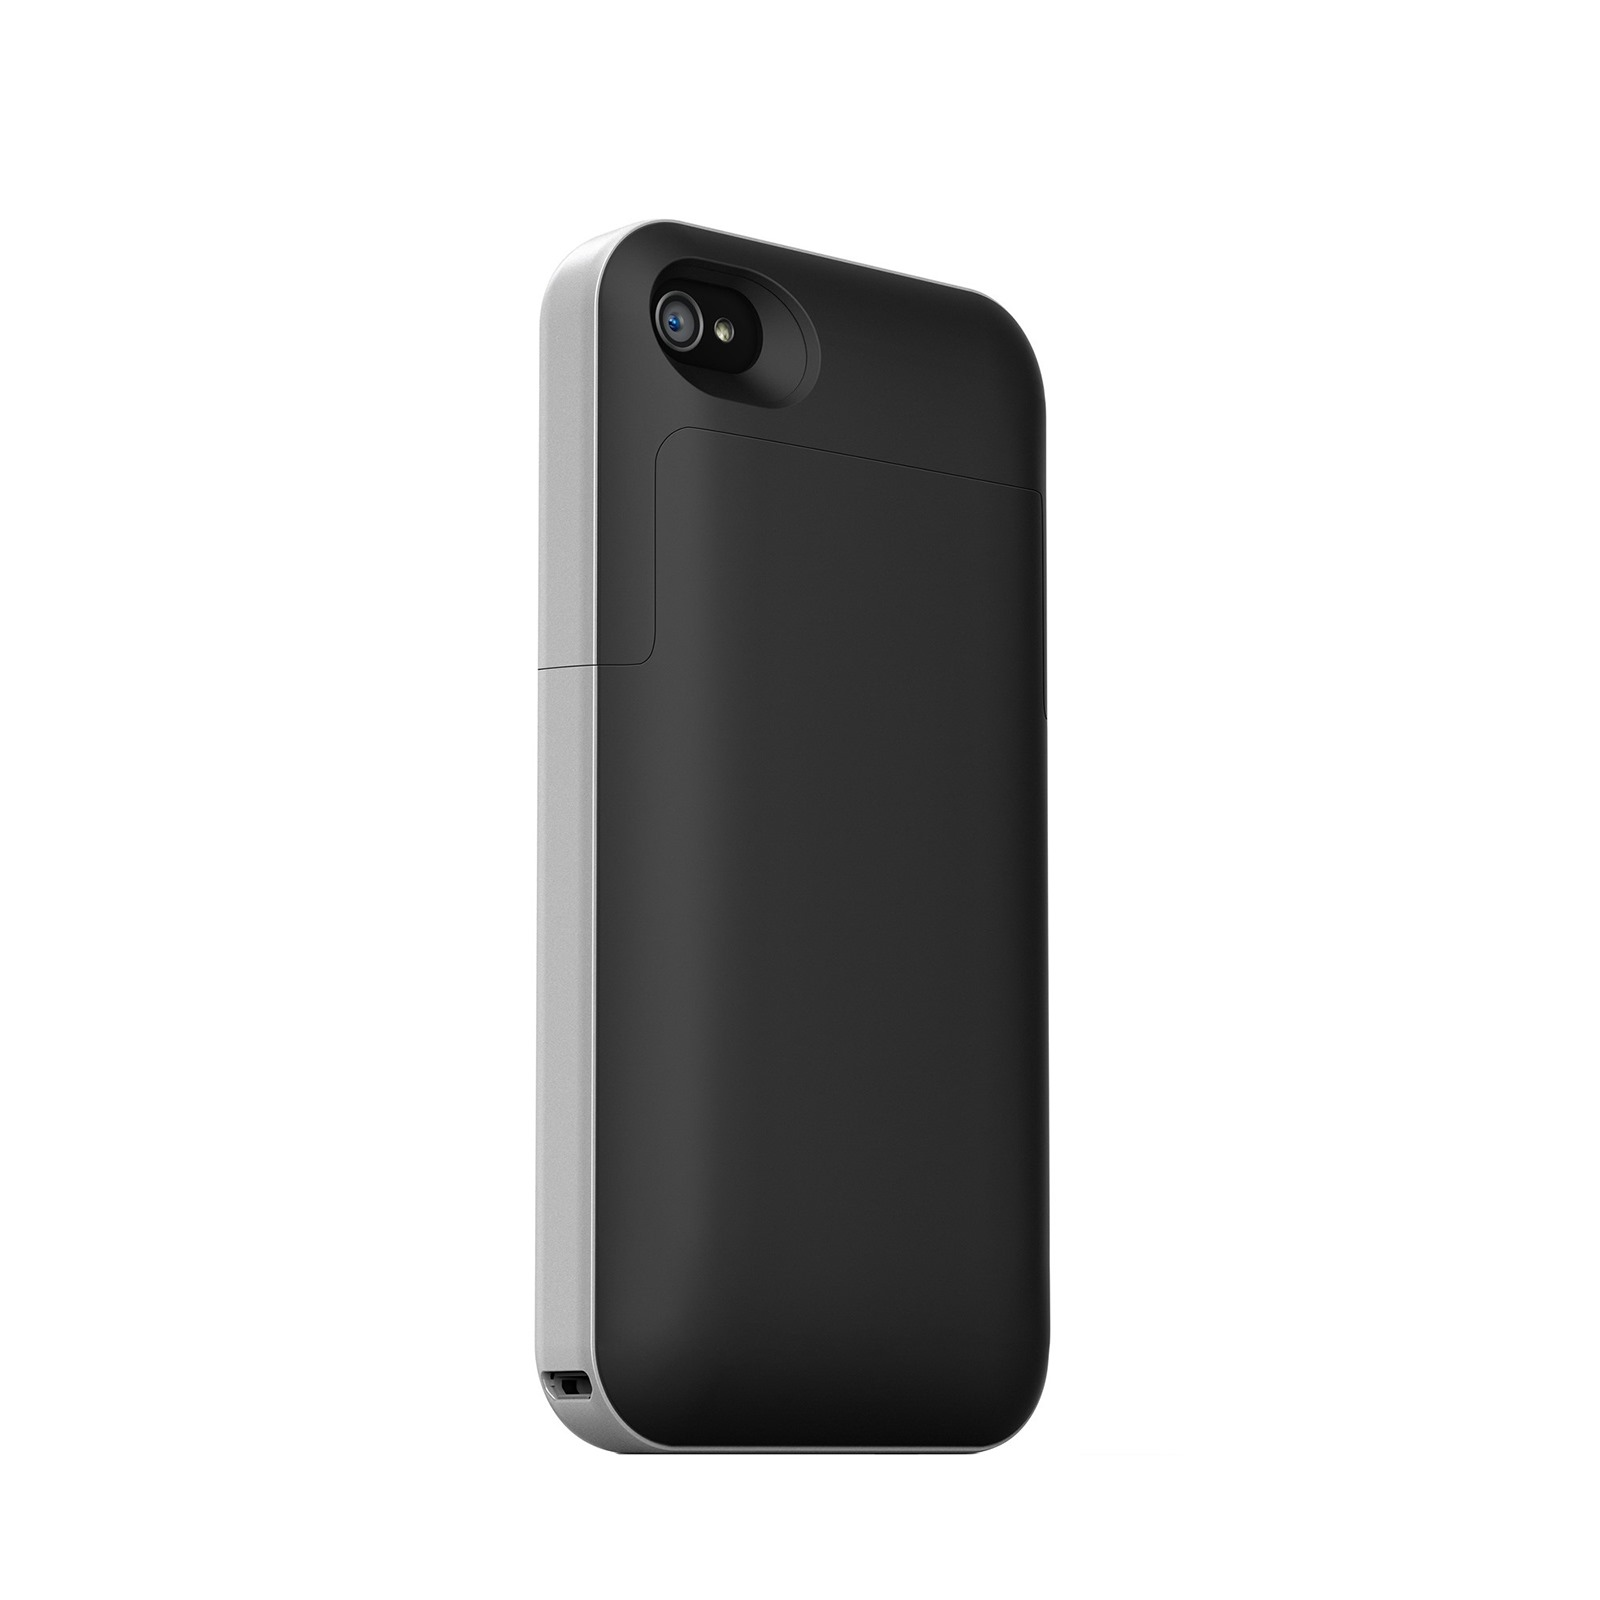 Case Design apple store cell phone cases : Cell Phones u0026 Accessories u0026gt; Cell Phone Accessories u0026gt; Cases, Covers ...